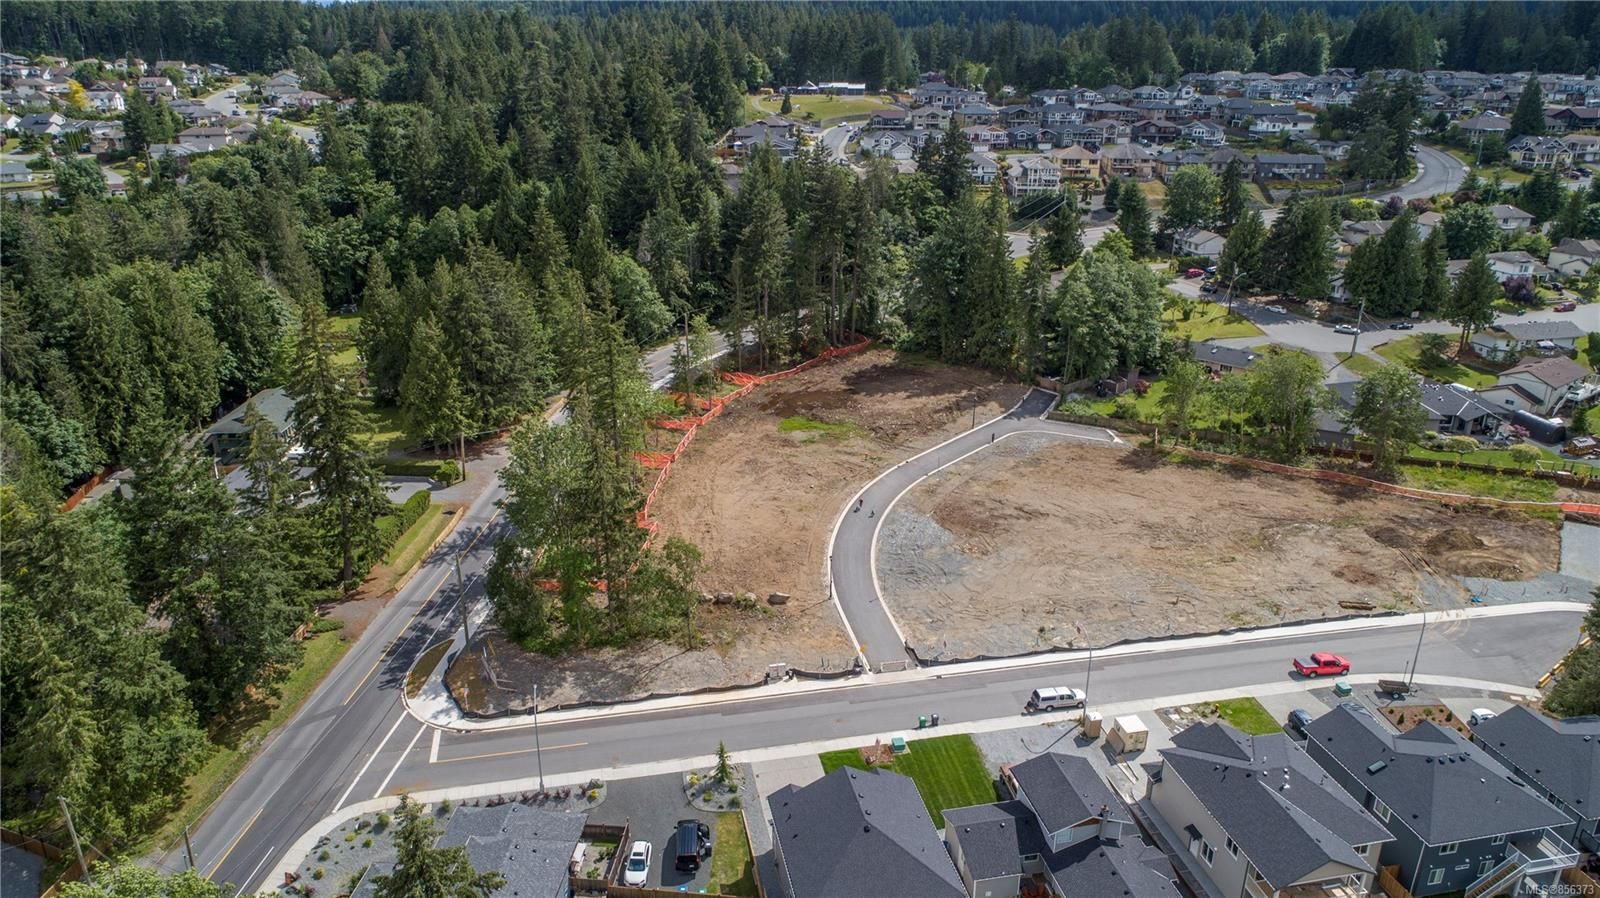 Main Photo: 229 Fleming Pl in : Na South Jingle Pot Land for sale (Nanaimo)  : MLS®# 856373